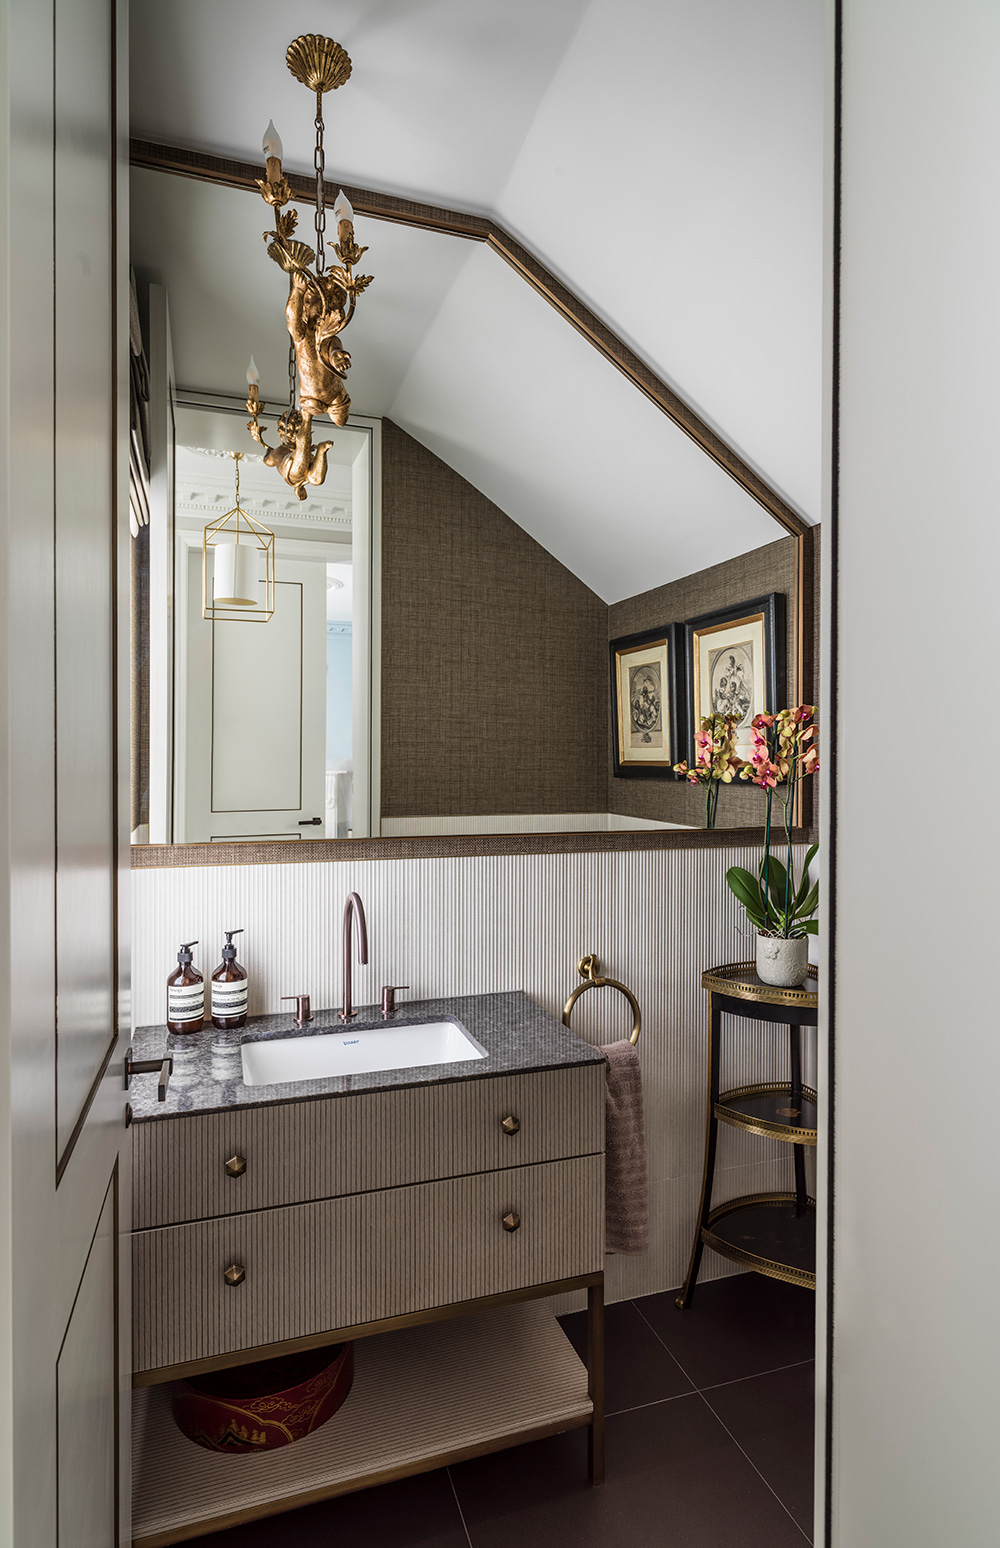 small cloakroom with textured bathroom vanity and cherub chandelier